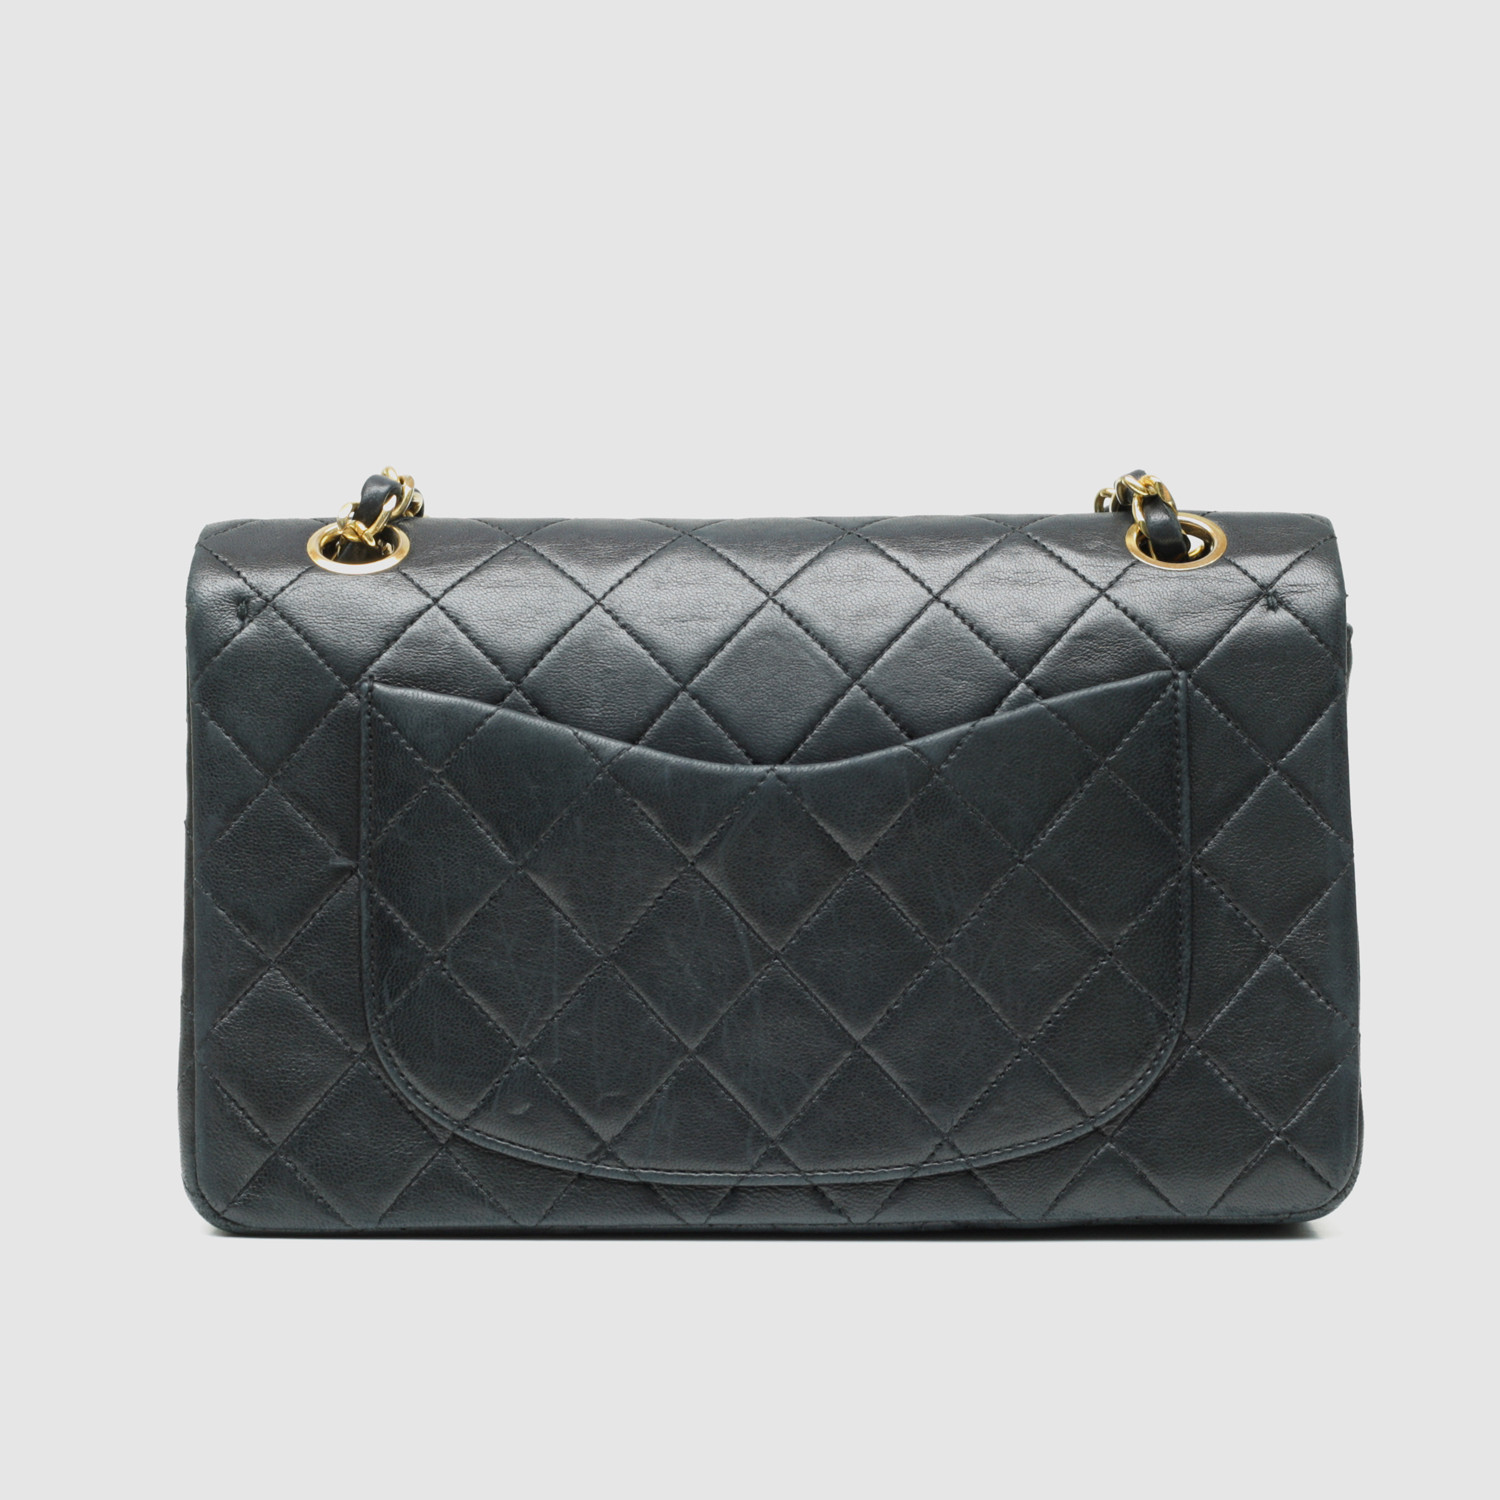 Chanel Small Flap Bag Black Quilted Lambskin Vintage